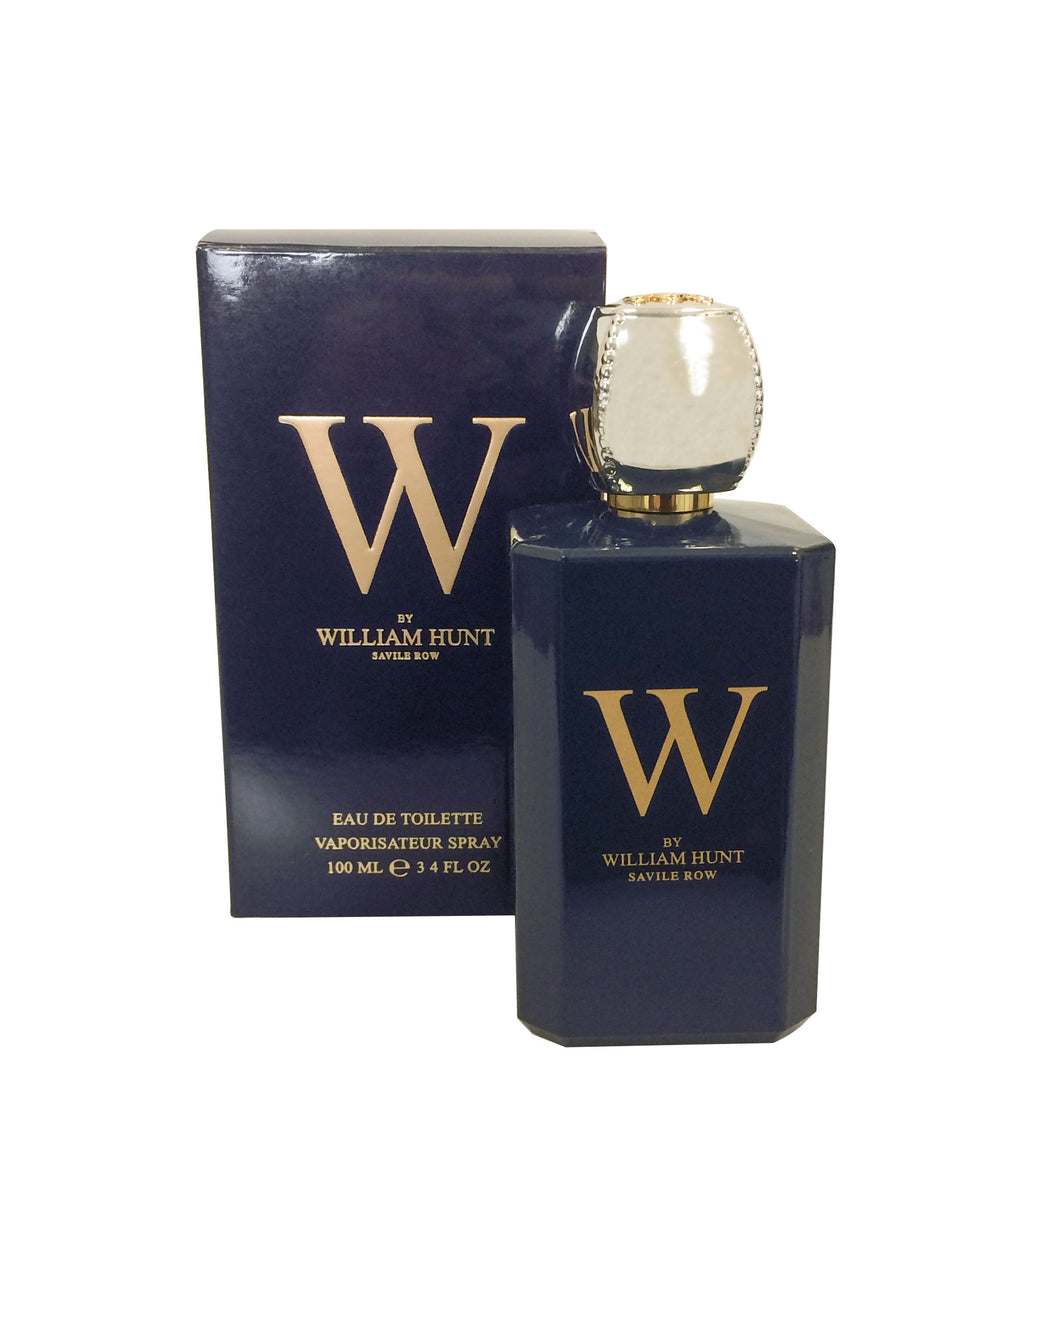 W by William Hunt Eau De Toilette (100ml)